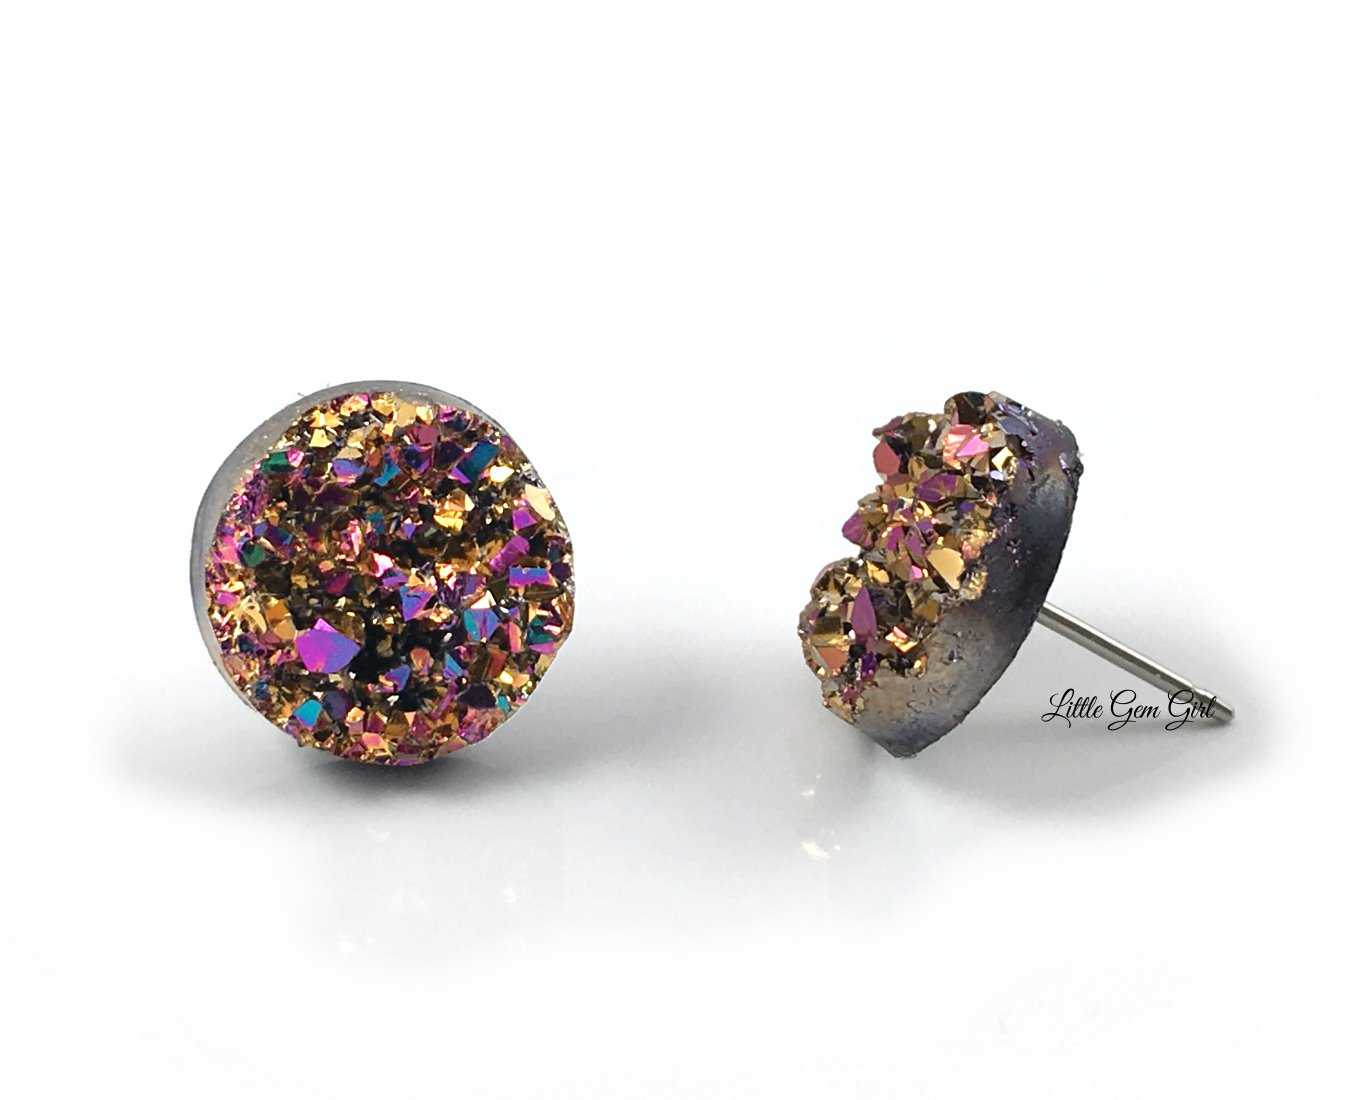 cc9c15e43 8mm, 10mm or 12mm Magenta Rainbow Gold Druzy Stud Earrings with Titanium or  Surgical Stainless Steel Posts and Backings - Small Pink Glitter Earrings